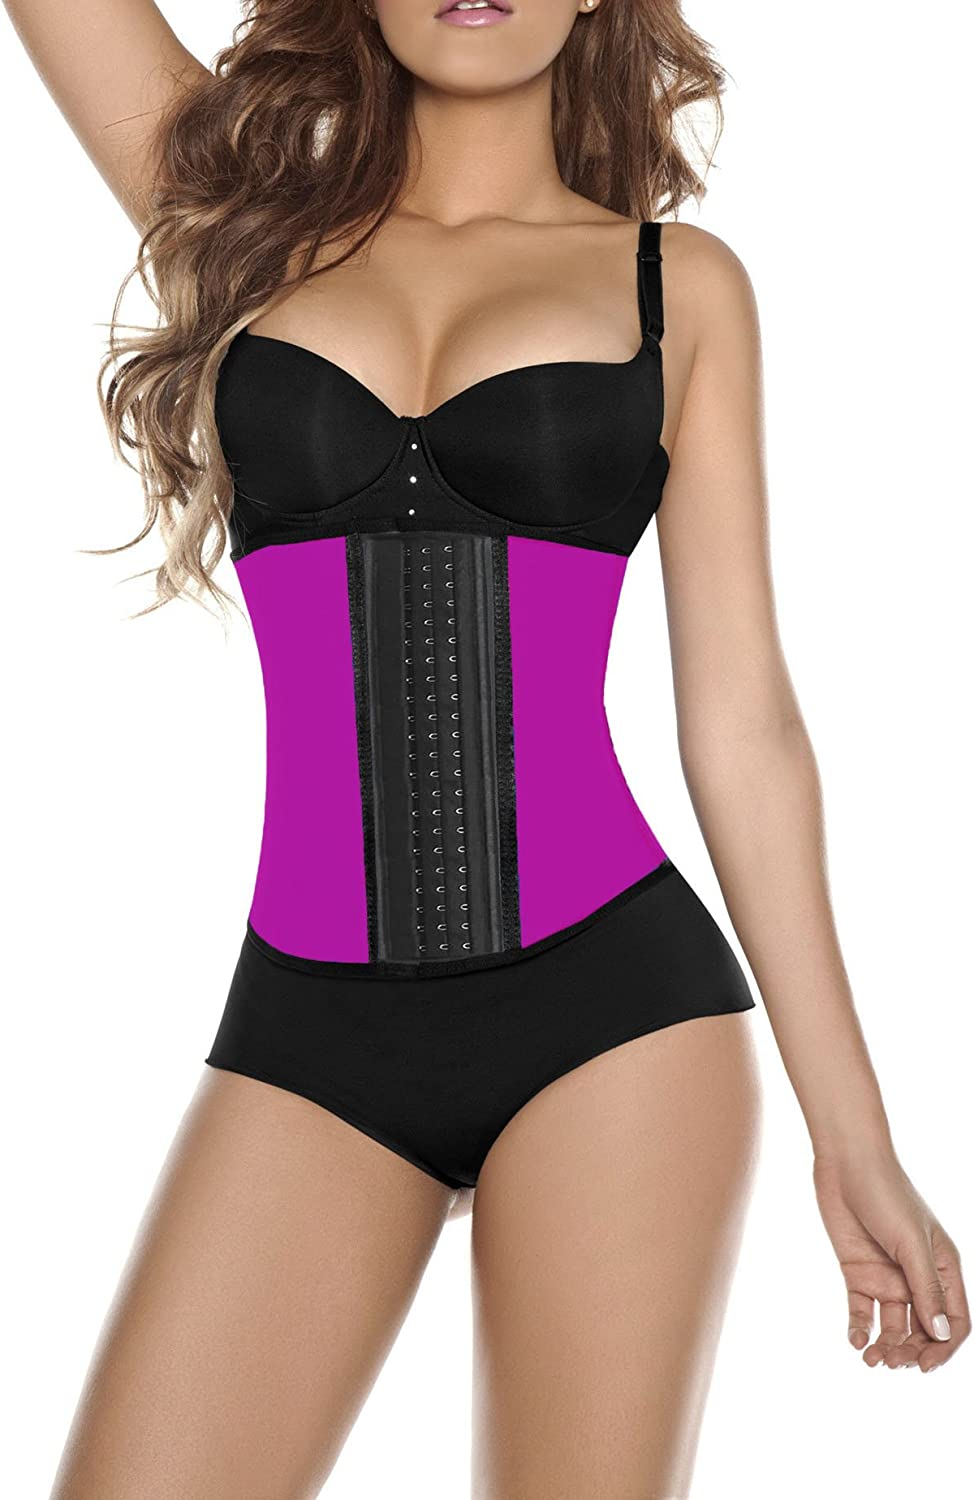 X-Large Hot Pink Max Compression Womens Neoprene and Spandex Workout Style Waist Cincher